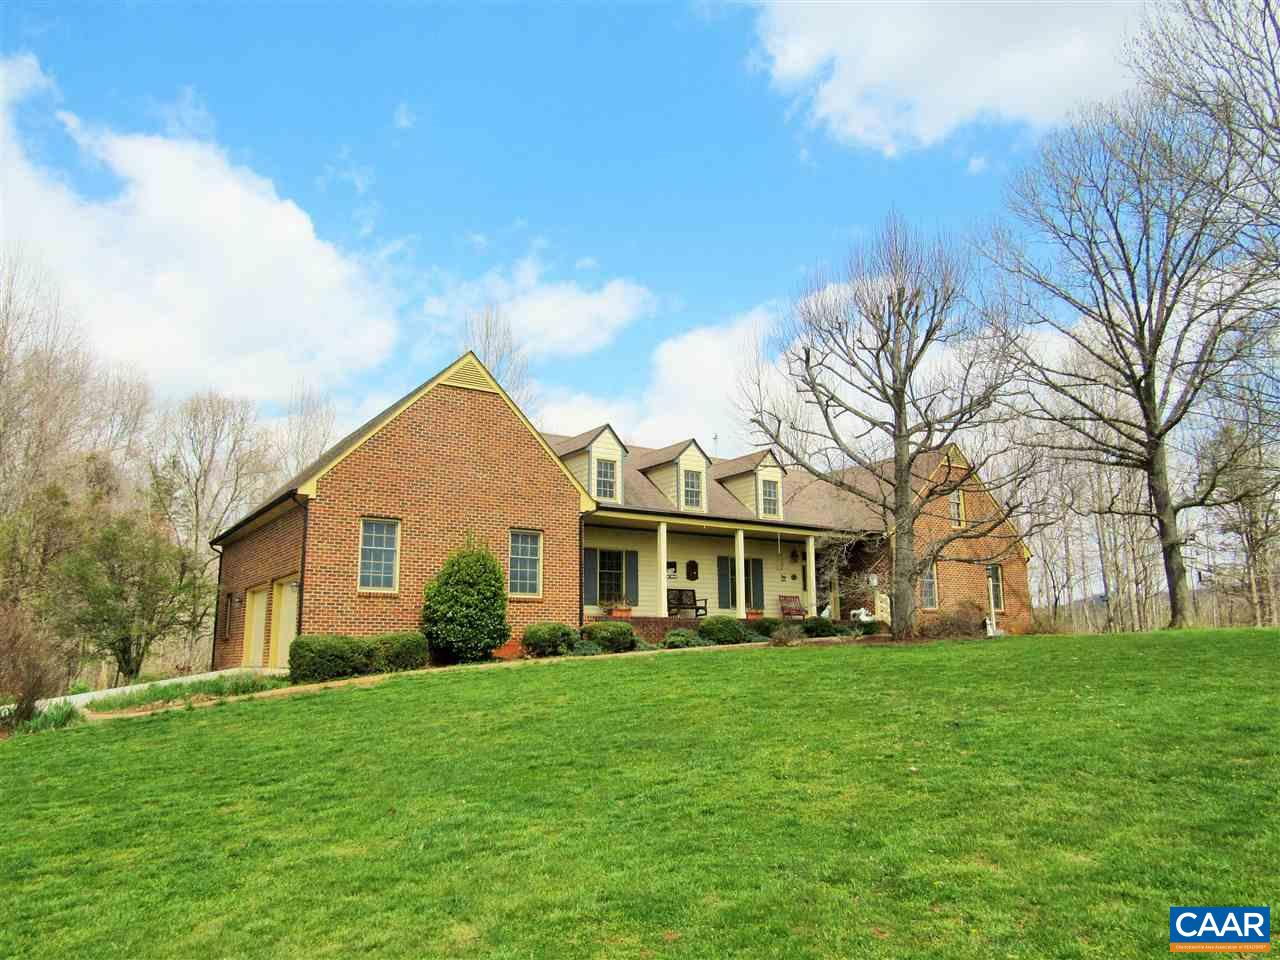 home for sale , MLS #574968, 531 Long Branch Dr